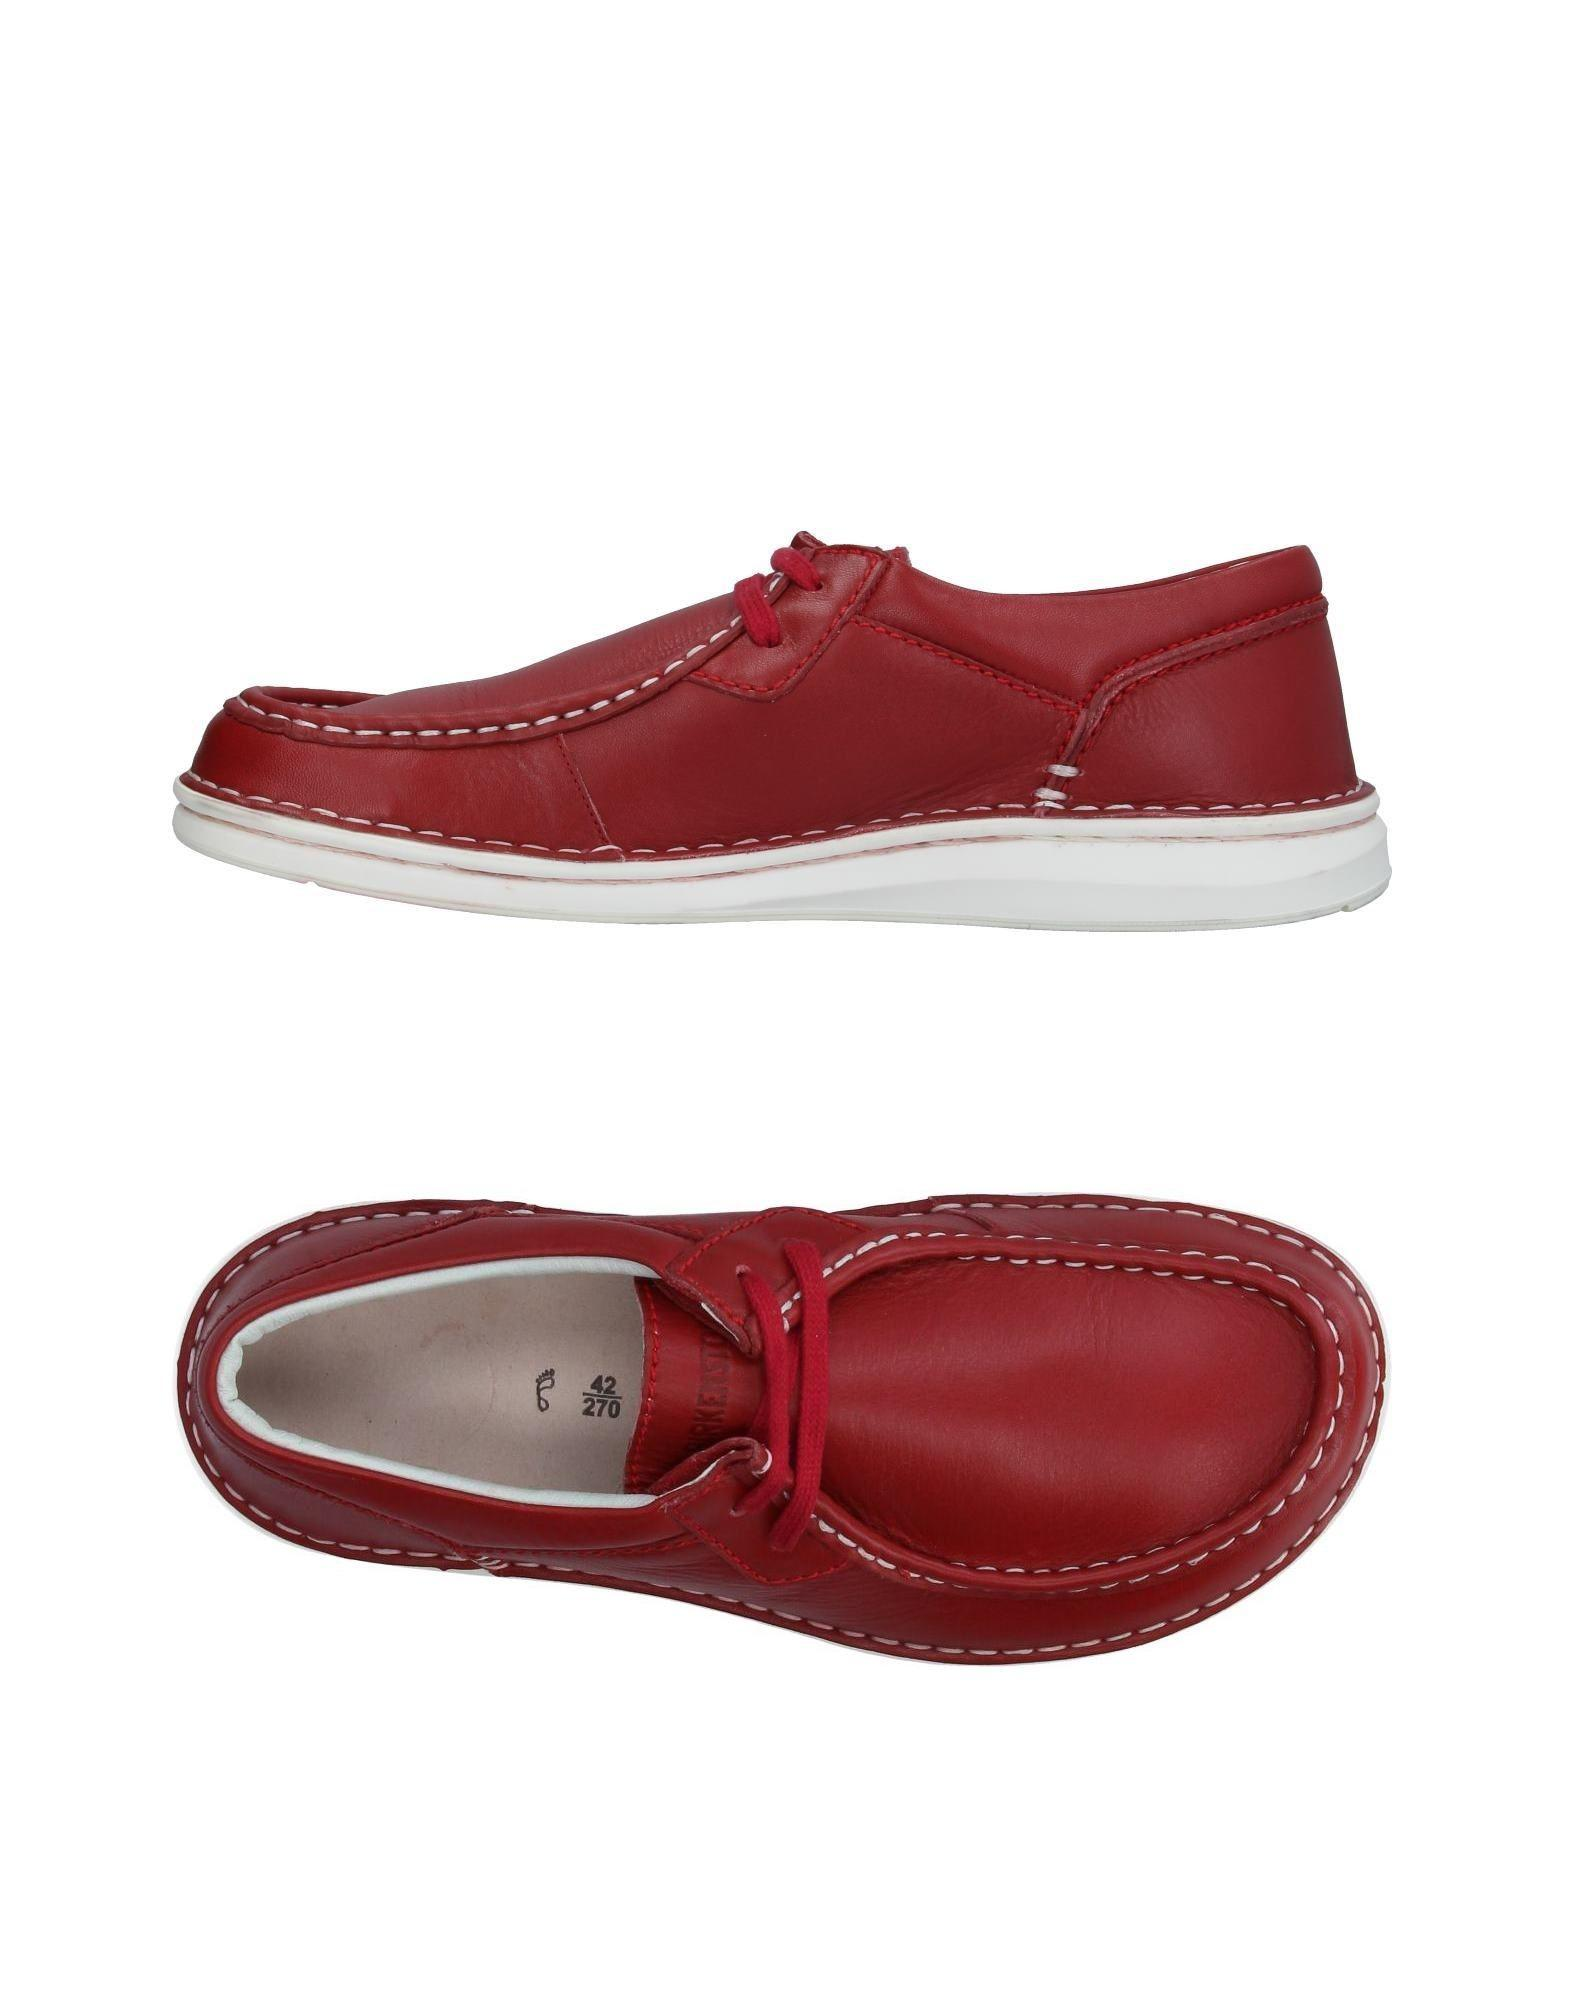 9b9c00c2c05a Lyst - Birkenstock Loafer in Red